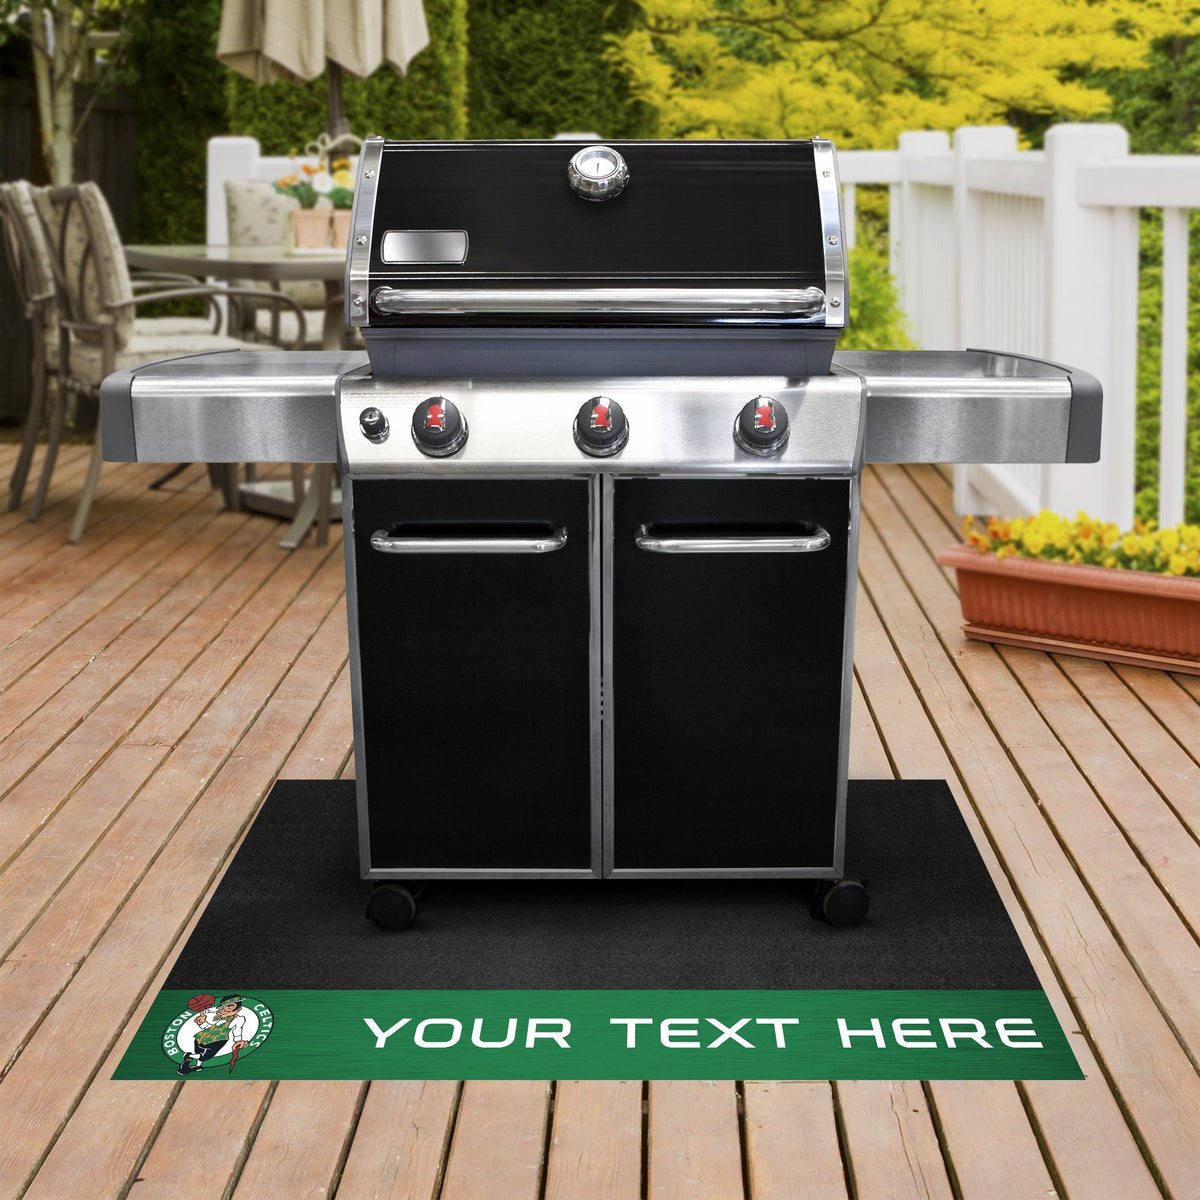 NBA Personalized Grill Mat Personalized Grill Mat Fan Mats Boston Celtics